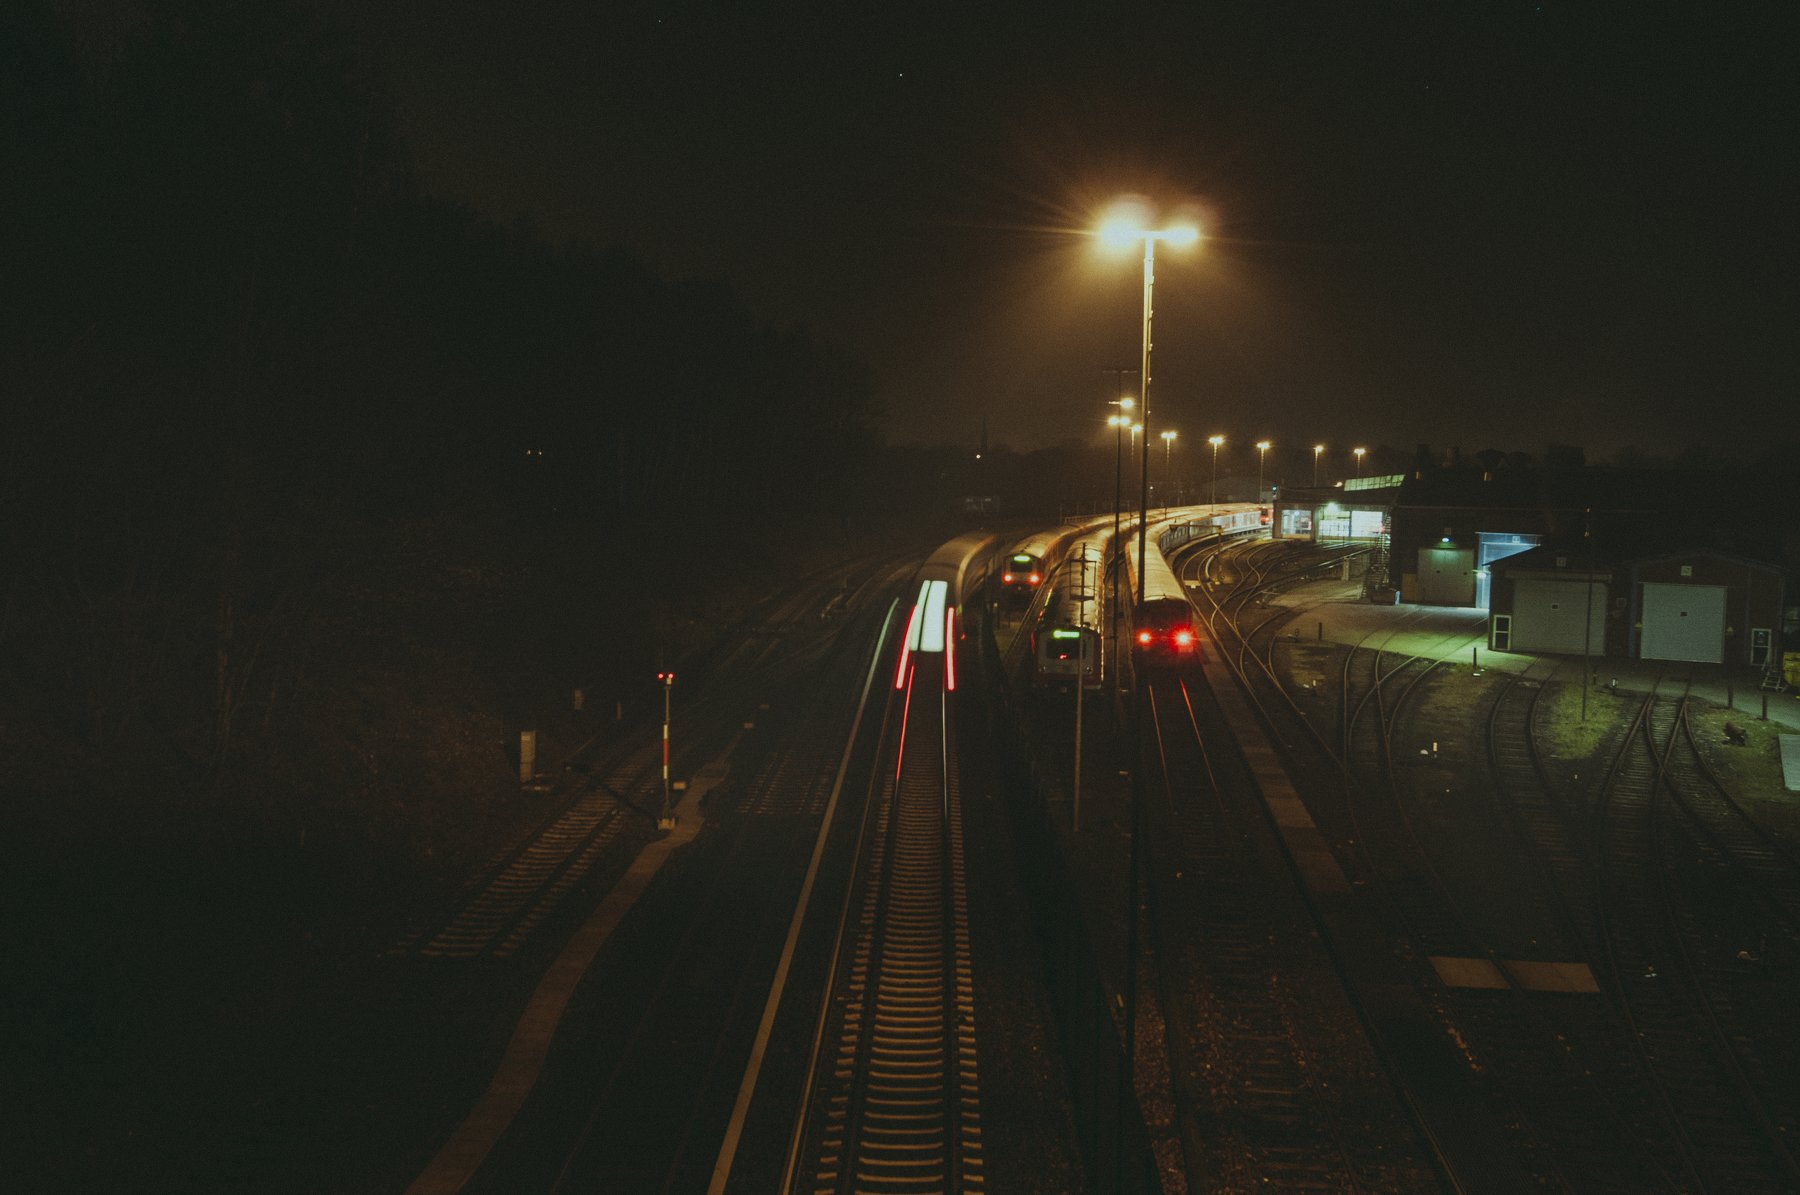 germany, yard, trains, ShootYourStyle